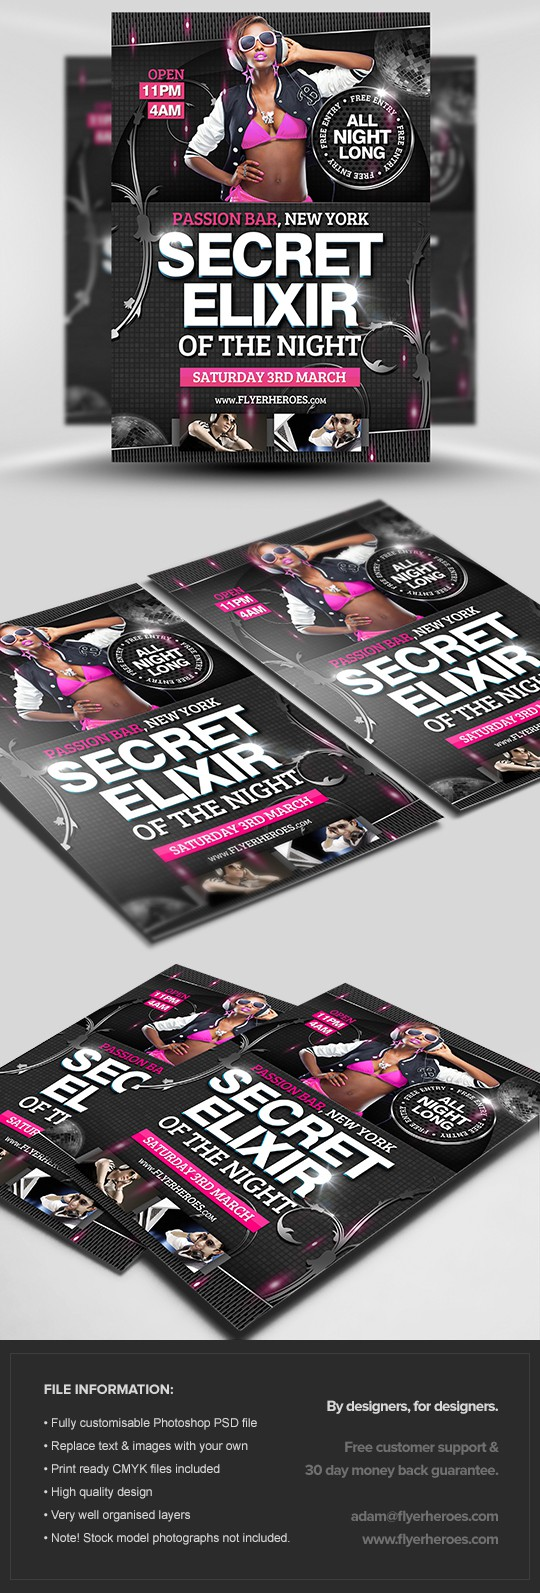 Secret Elixr Flyer Template